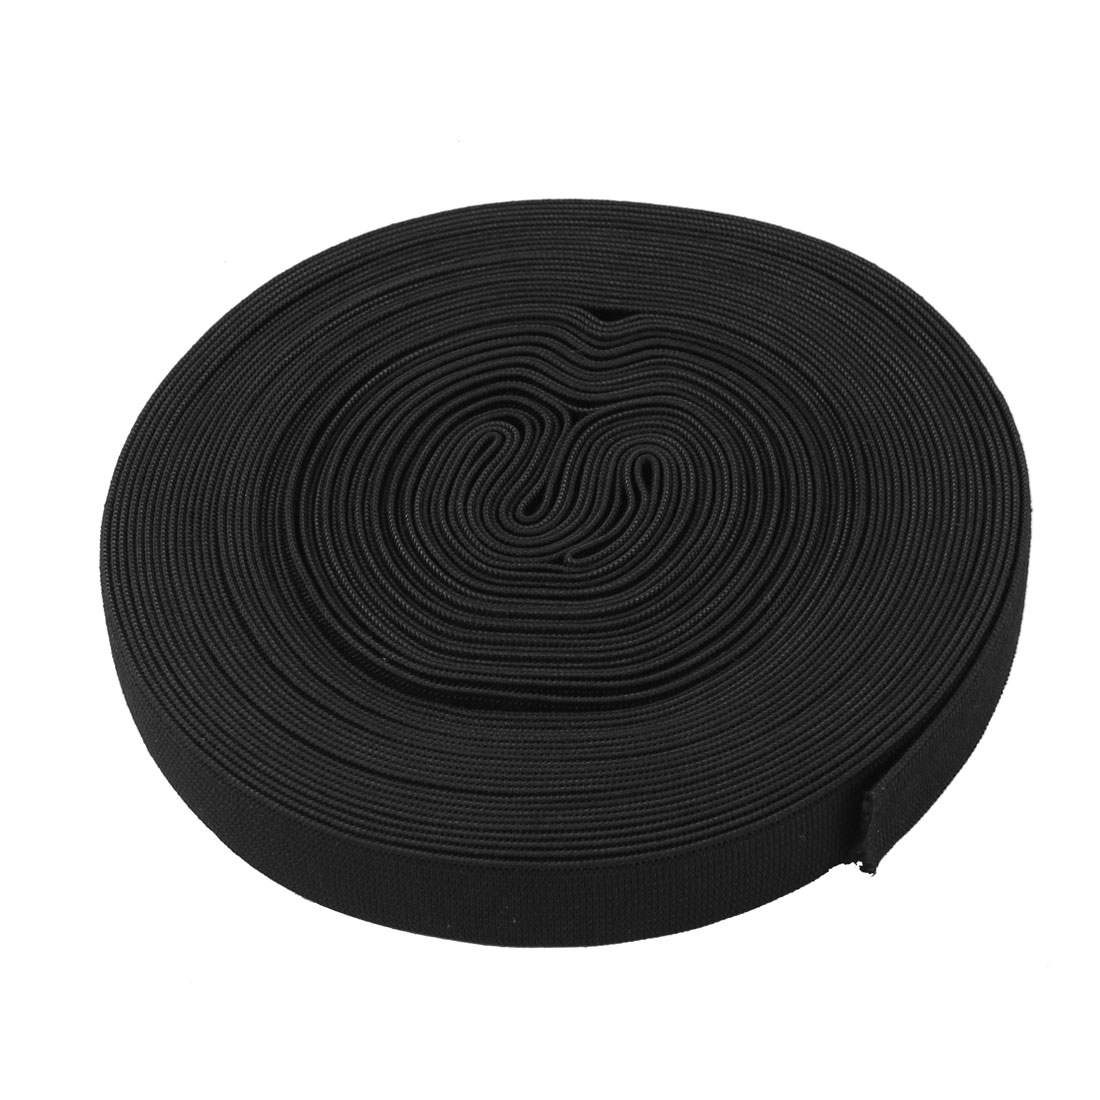 Household Elastic Fabric Tailor Braided Band 12.5M Long 20mm Wide Black for Trousers and Pants